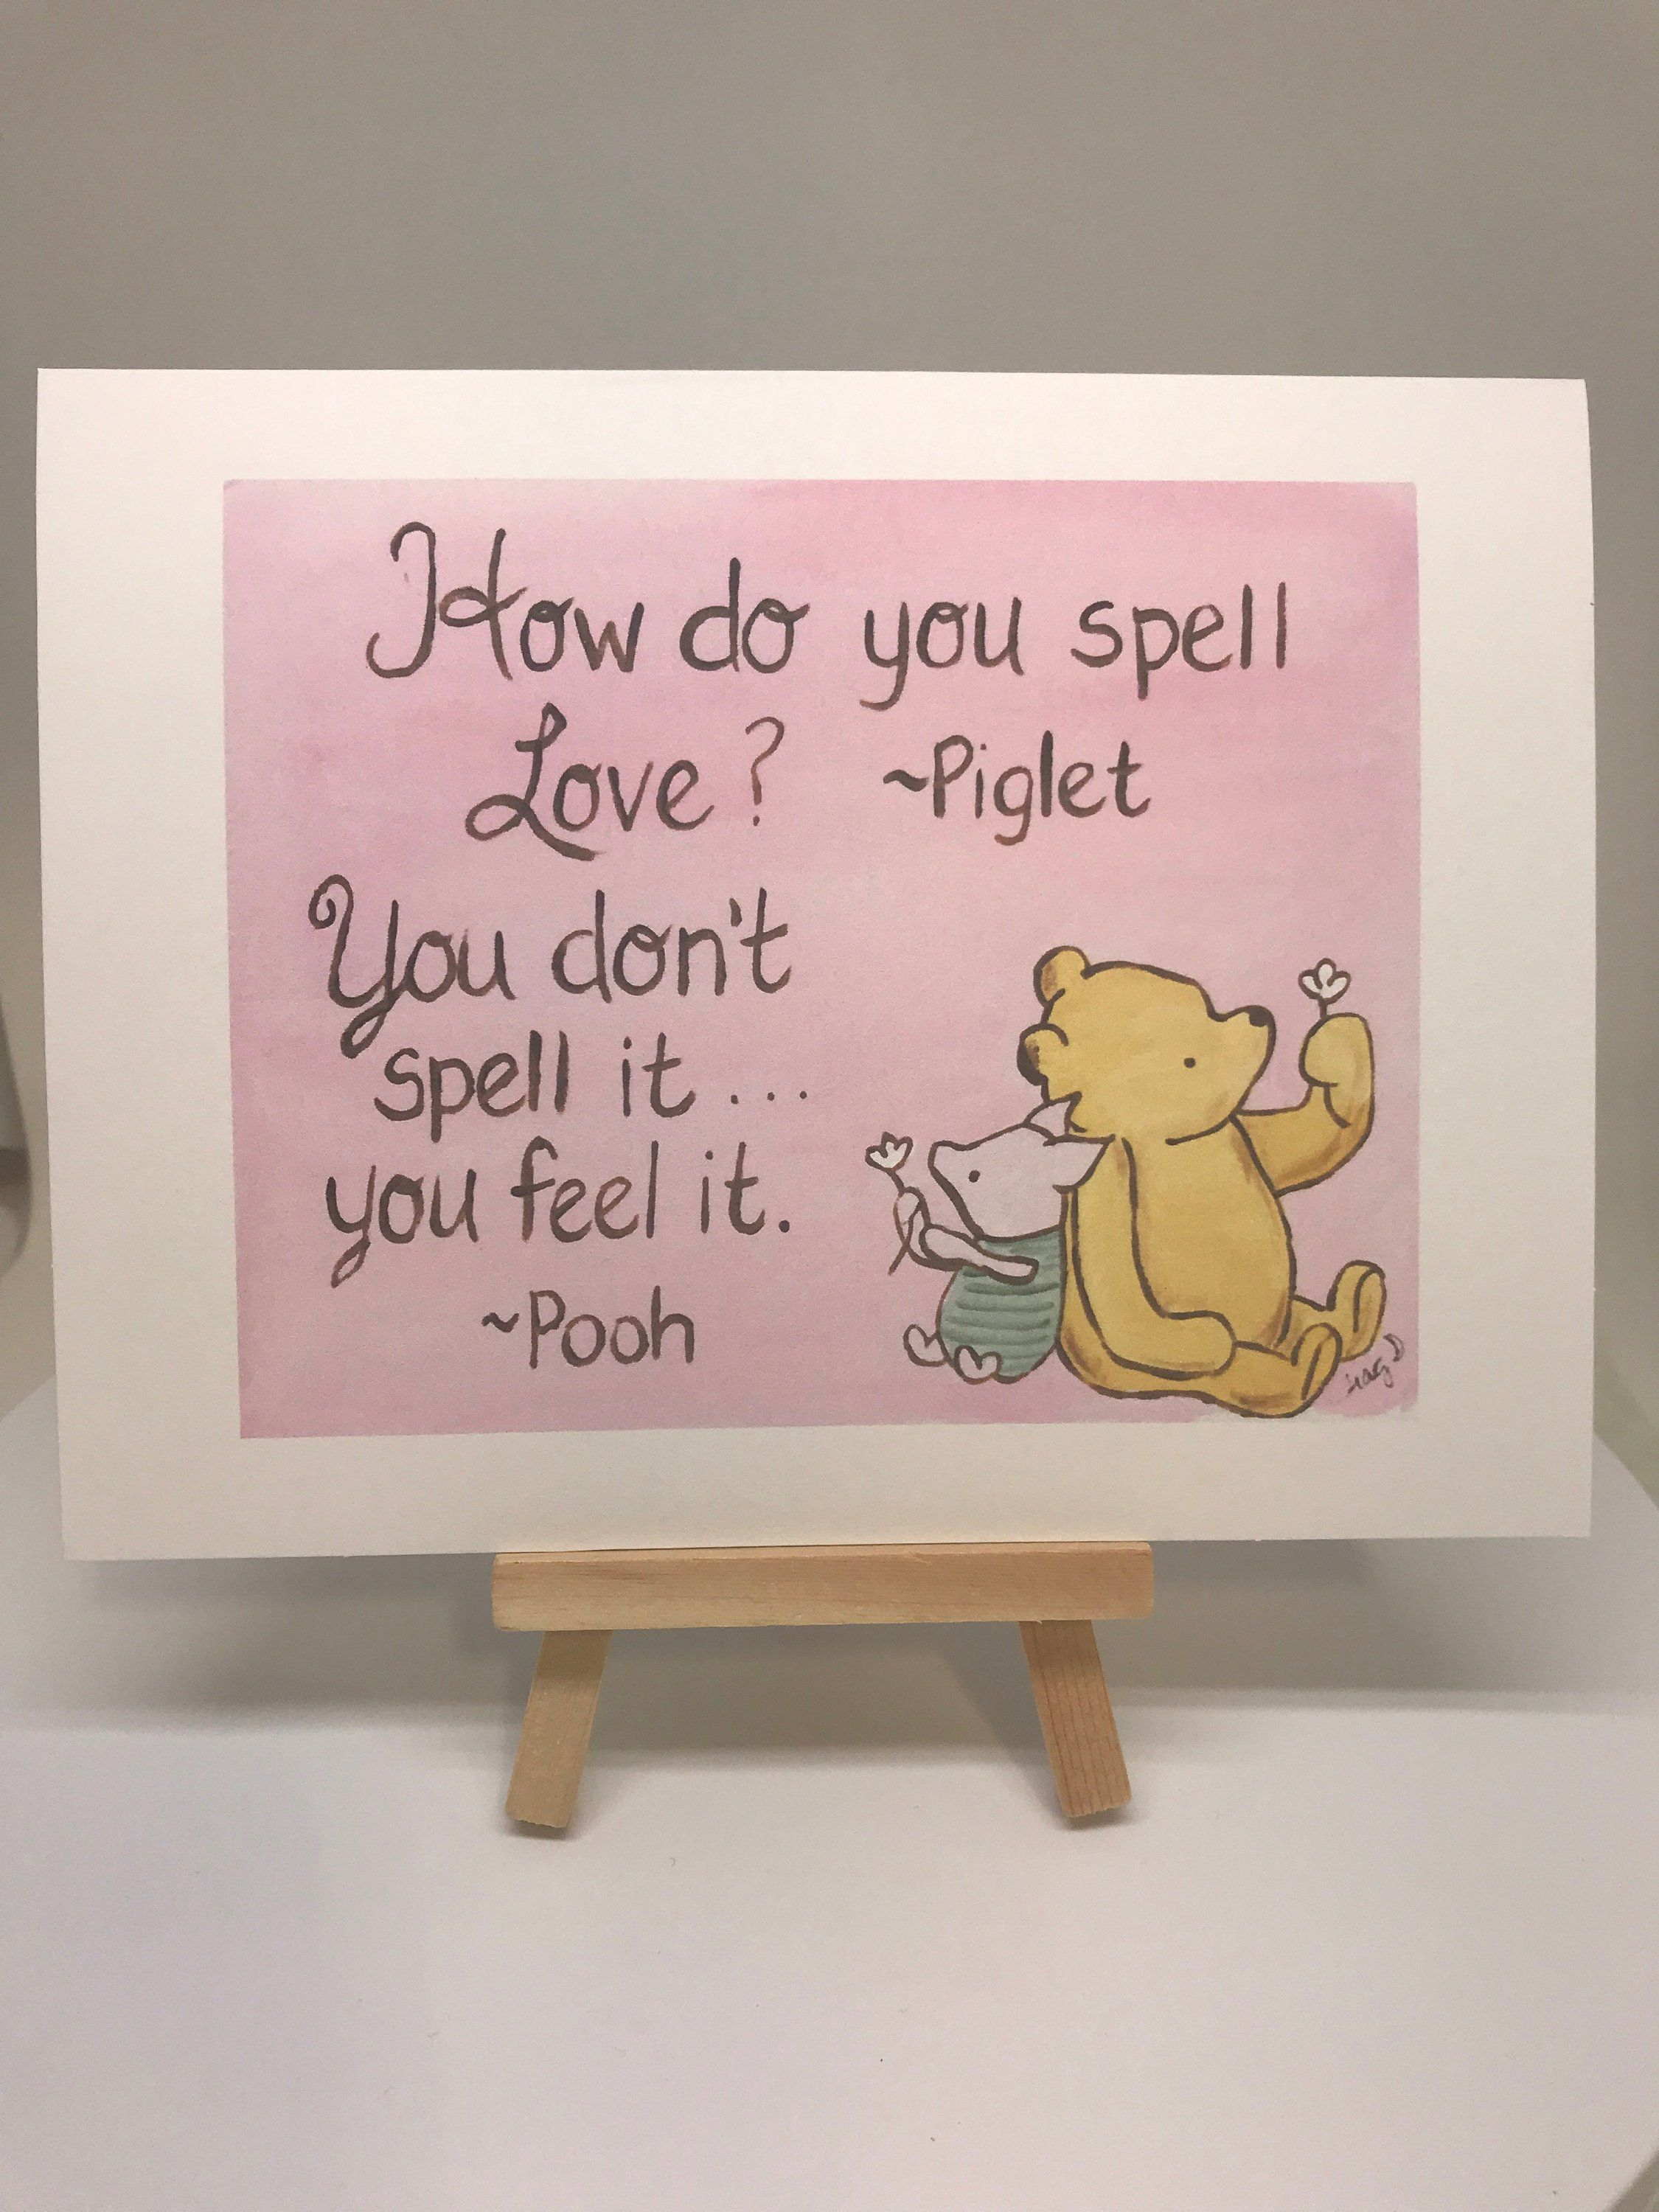 Valentine's day Classic Winnie the Pooh I love you card, XOXO love quote how to spell love